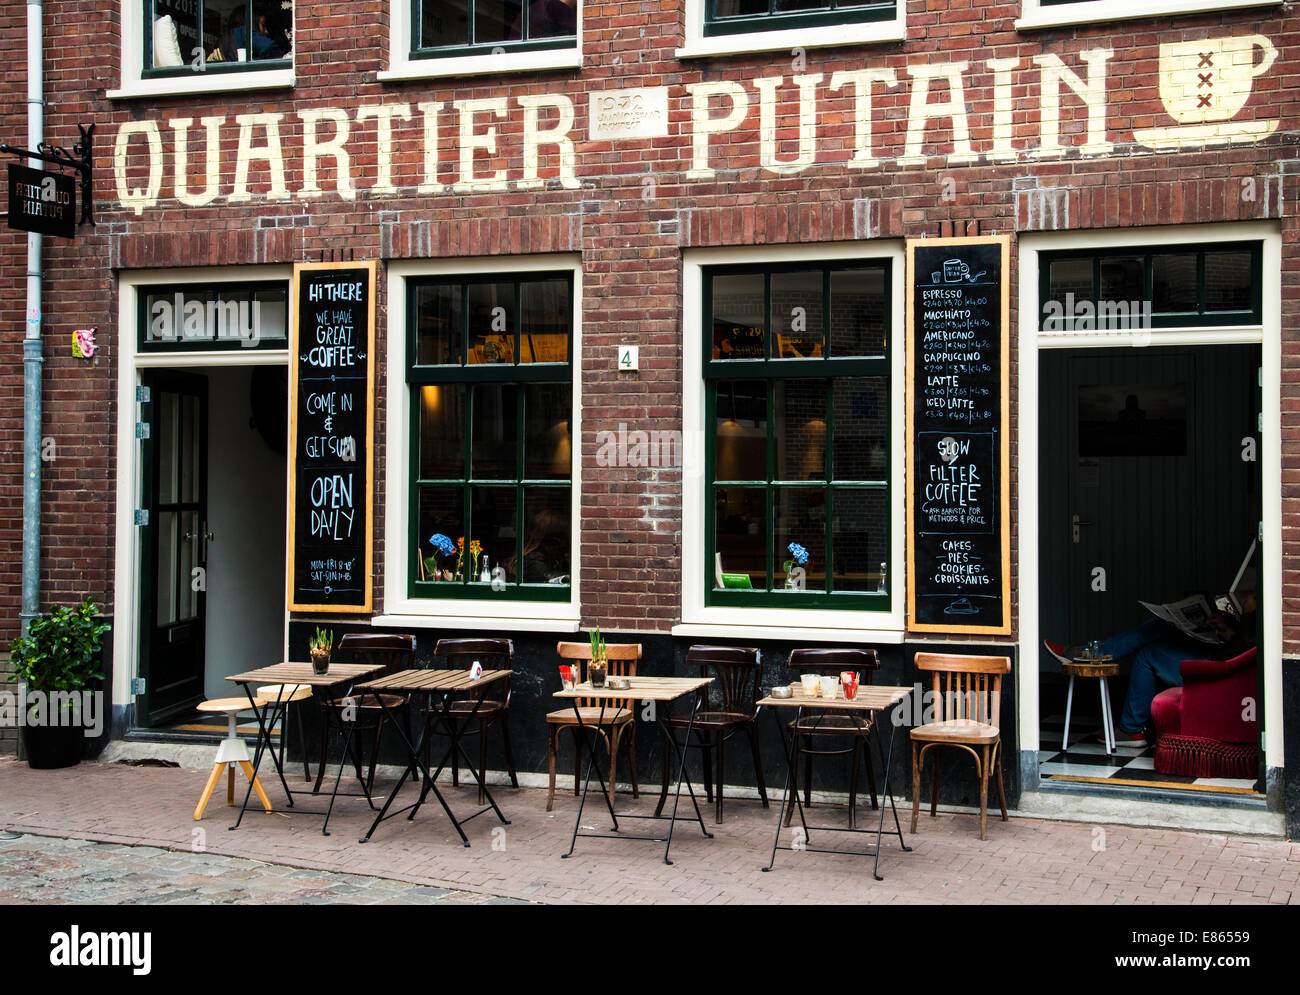 Quartier Putain café in the red light district, Amsterdam, the Netherlands - Stock Image